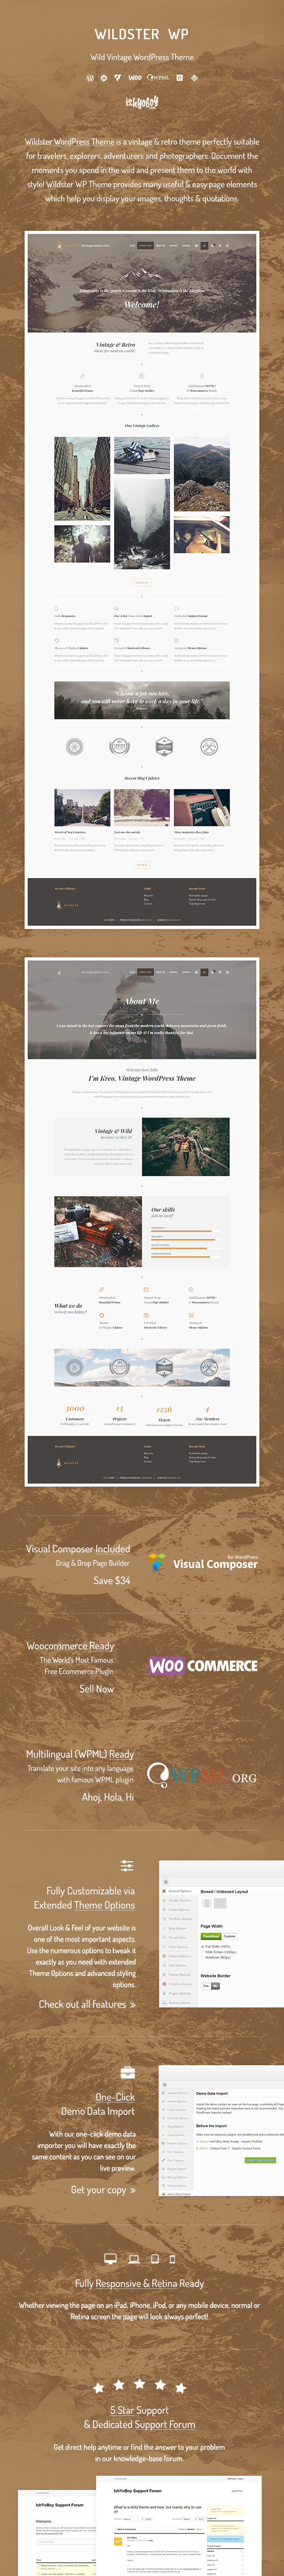 IshYoBoy | Wildster WP - Wild WordPress Theme